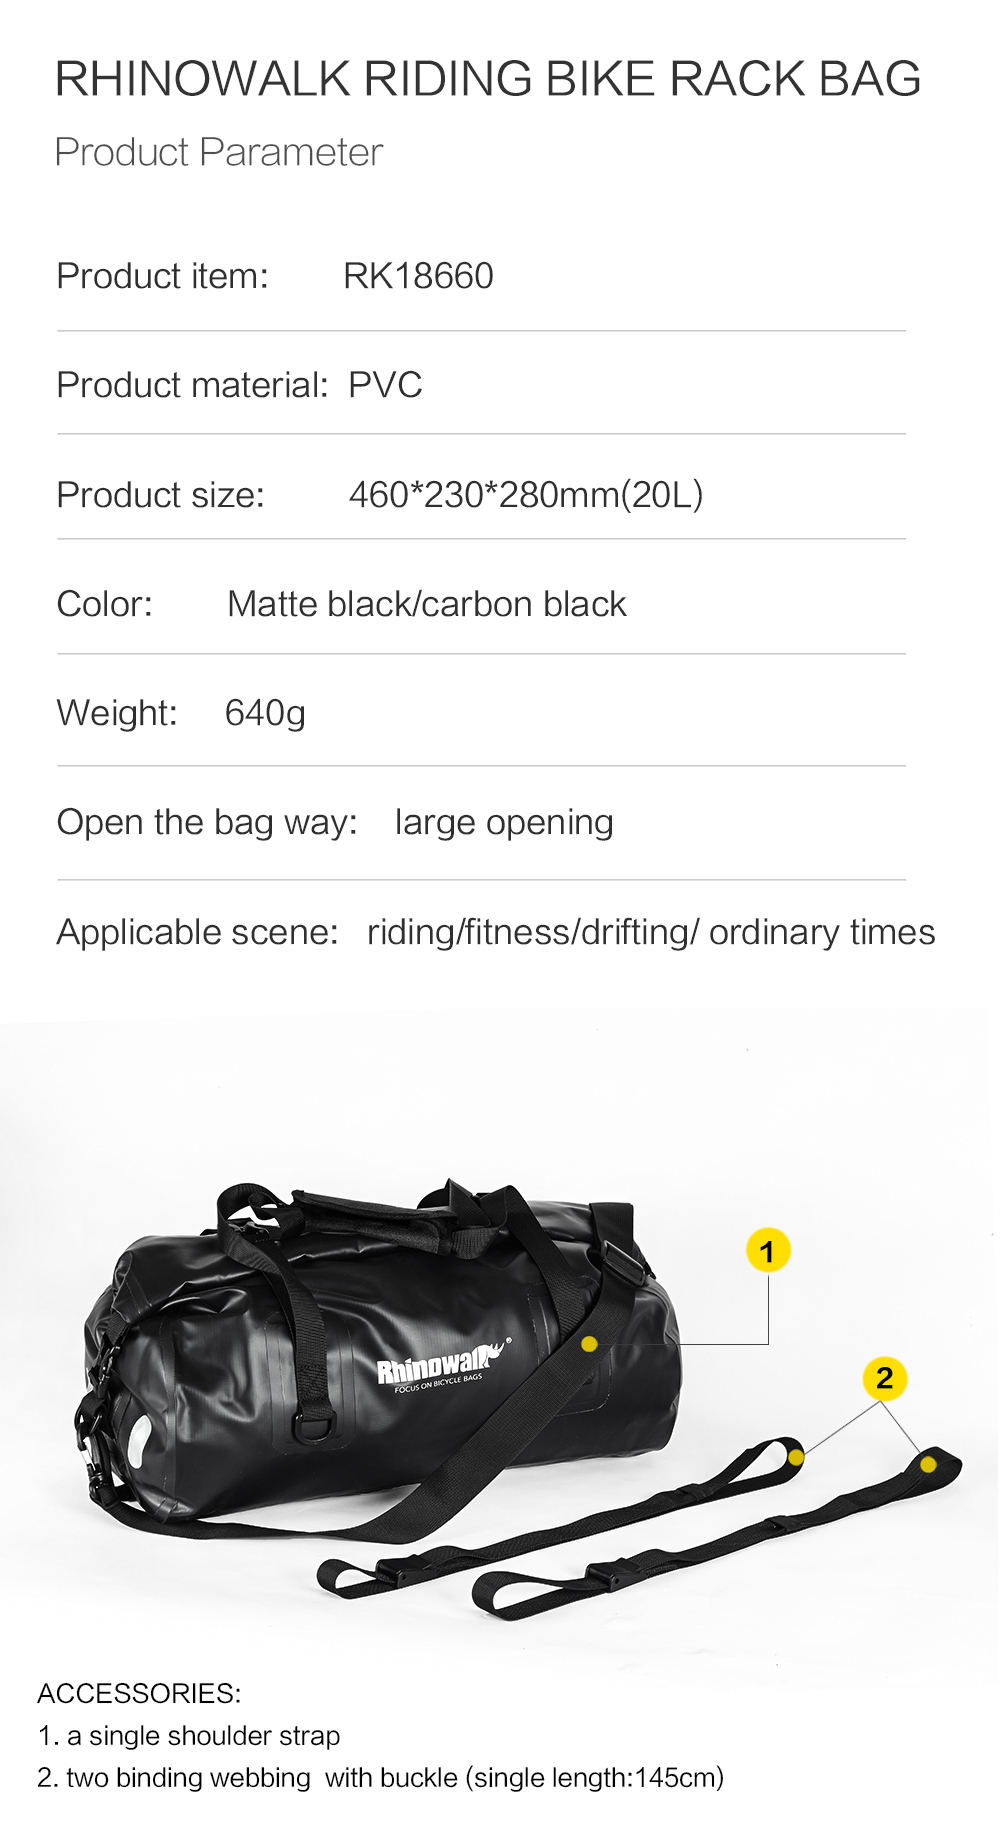 Rhinowalk Bicycle Luggage Bags 20L Full Waterproof for Road Bike Rear Rack Trunk Cycling Saddle Storage Pannier Multi Travel Bag (9)